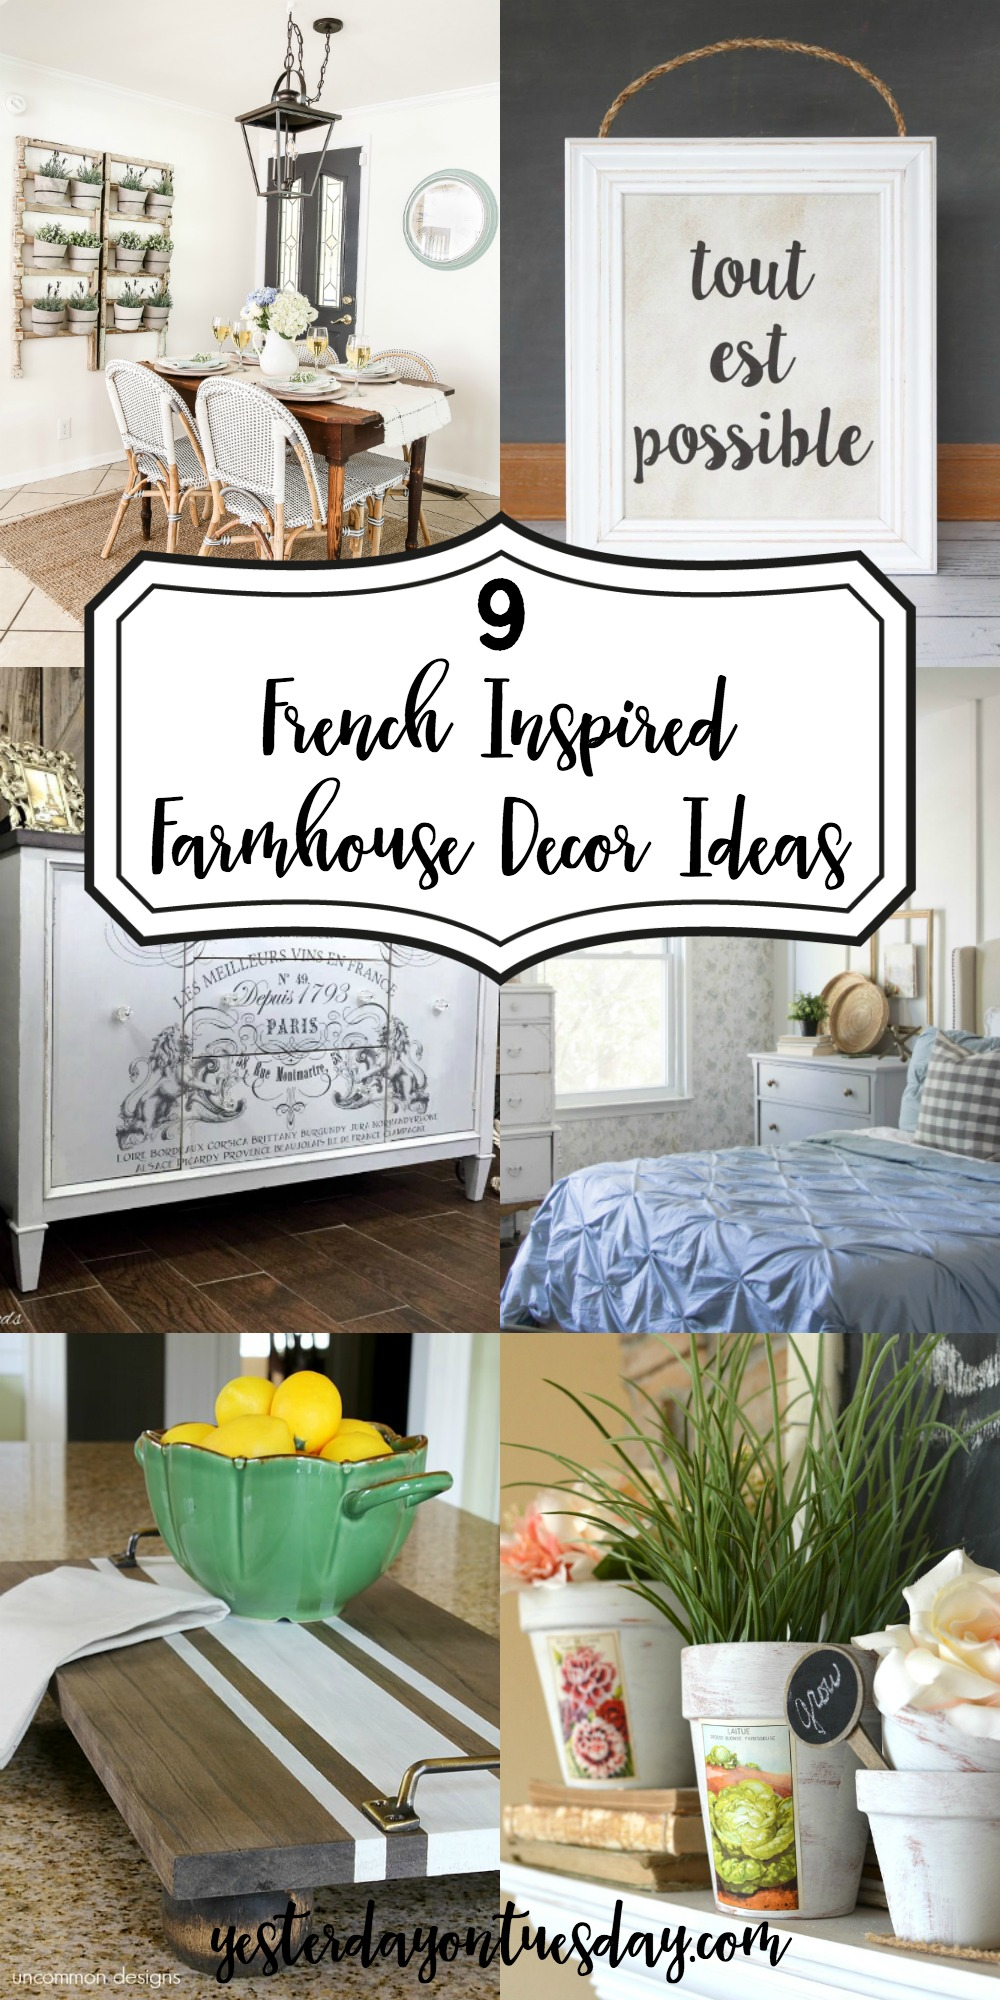 9 Lovely French Farmhouse Ideas